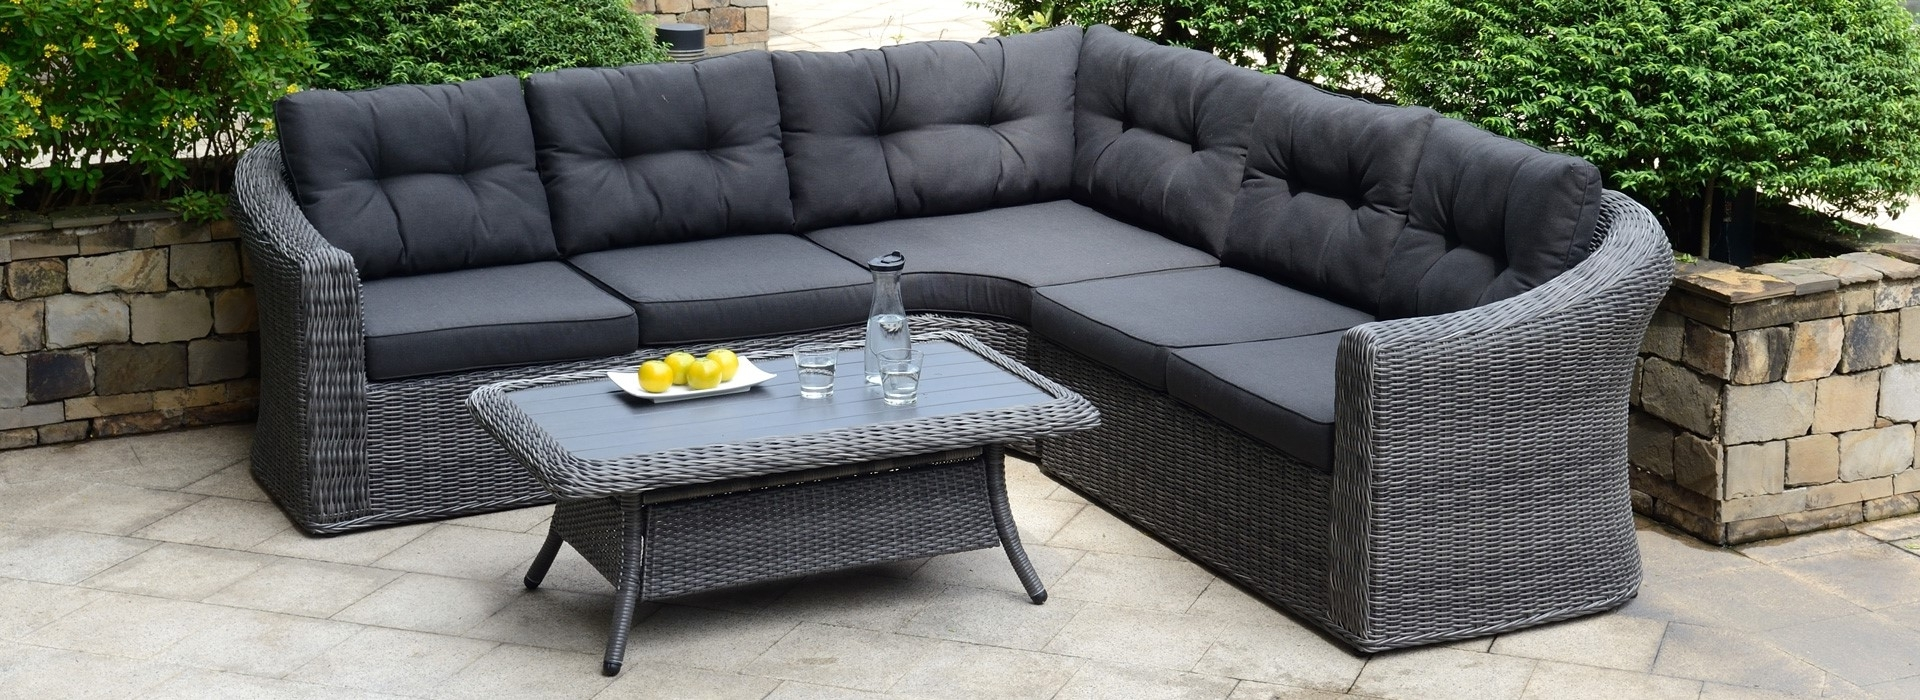 Best And Newest Gypsy Cheap Patio Furniture Conversation Sets F66X On Wonderful Inside Inexpensive Patio Conversation Sets (View 2 of 15)